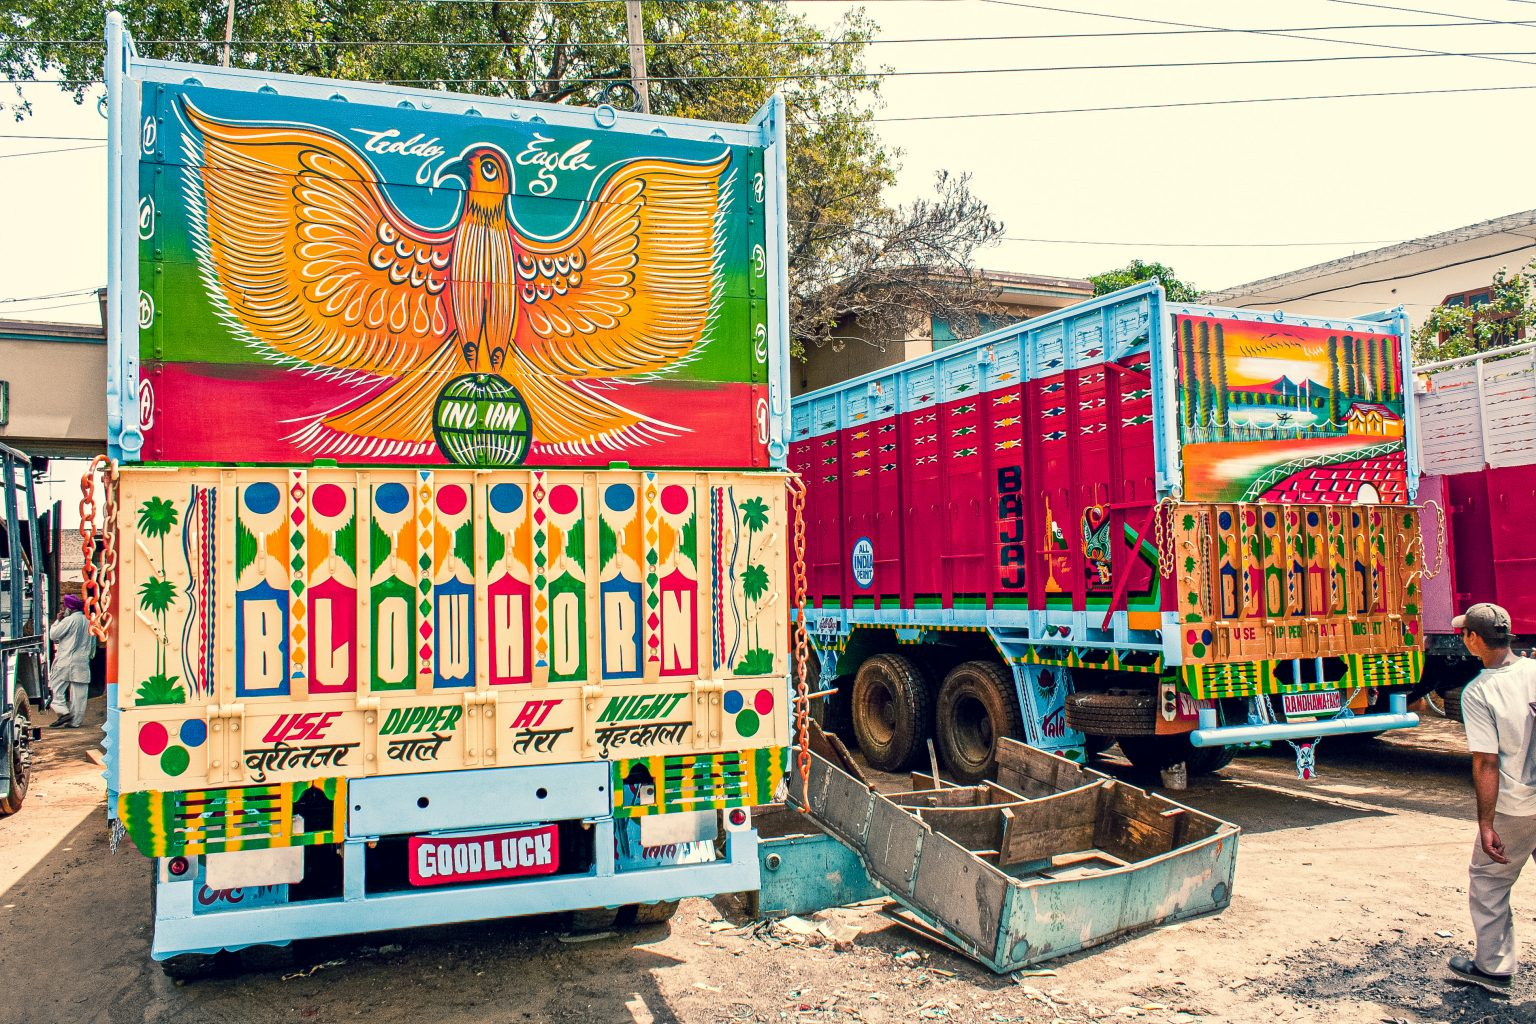 Image: Two brightly painted trucks next to each other. One is adorned with a bird.